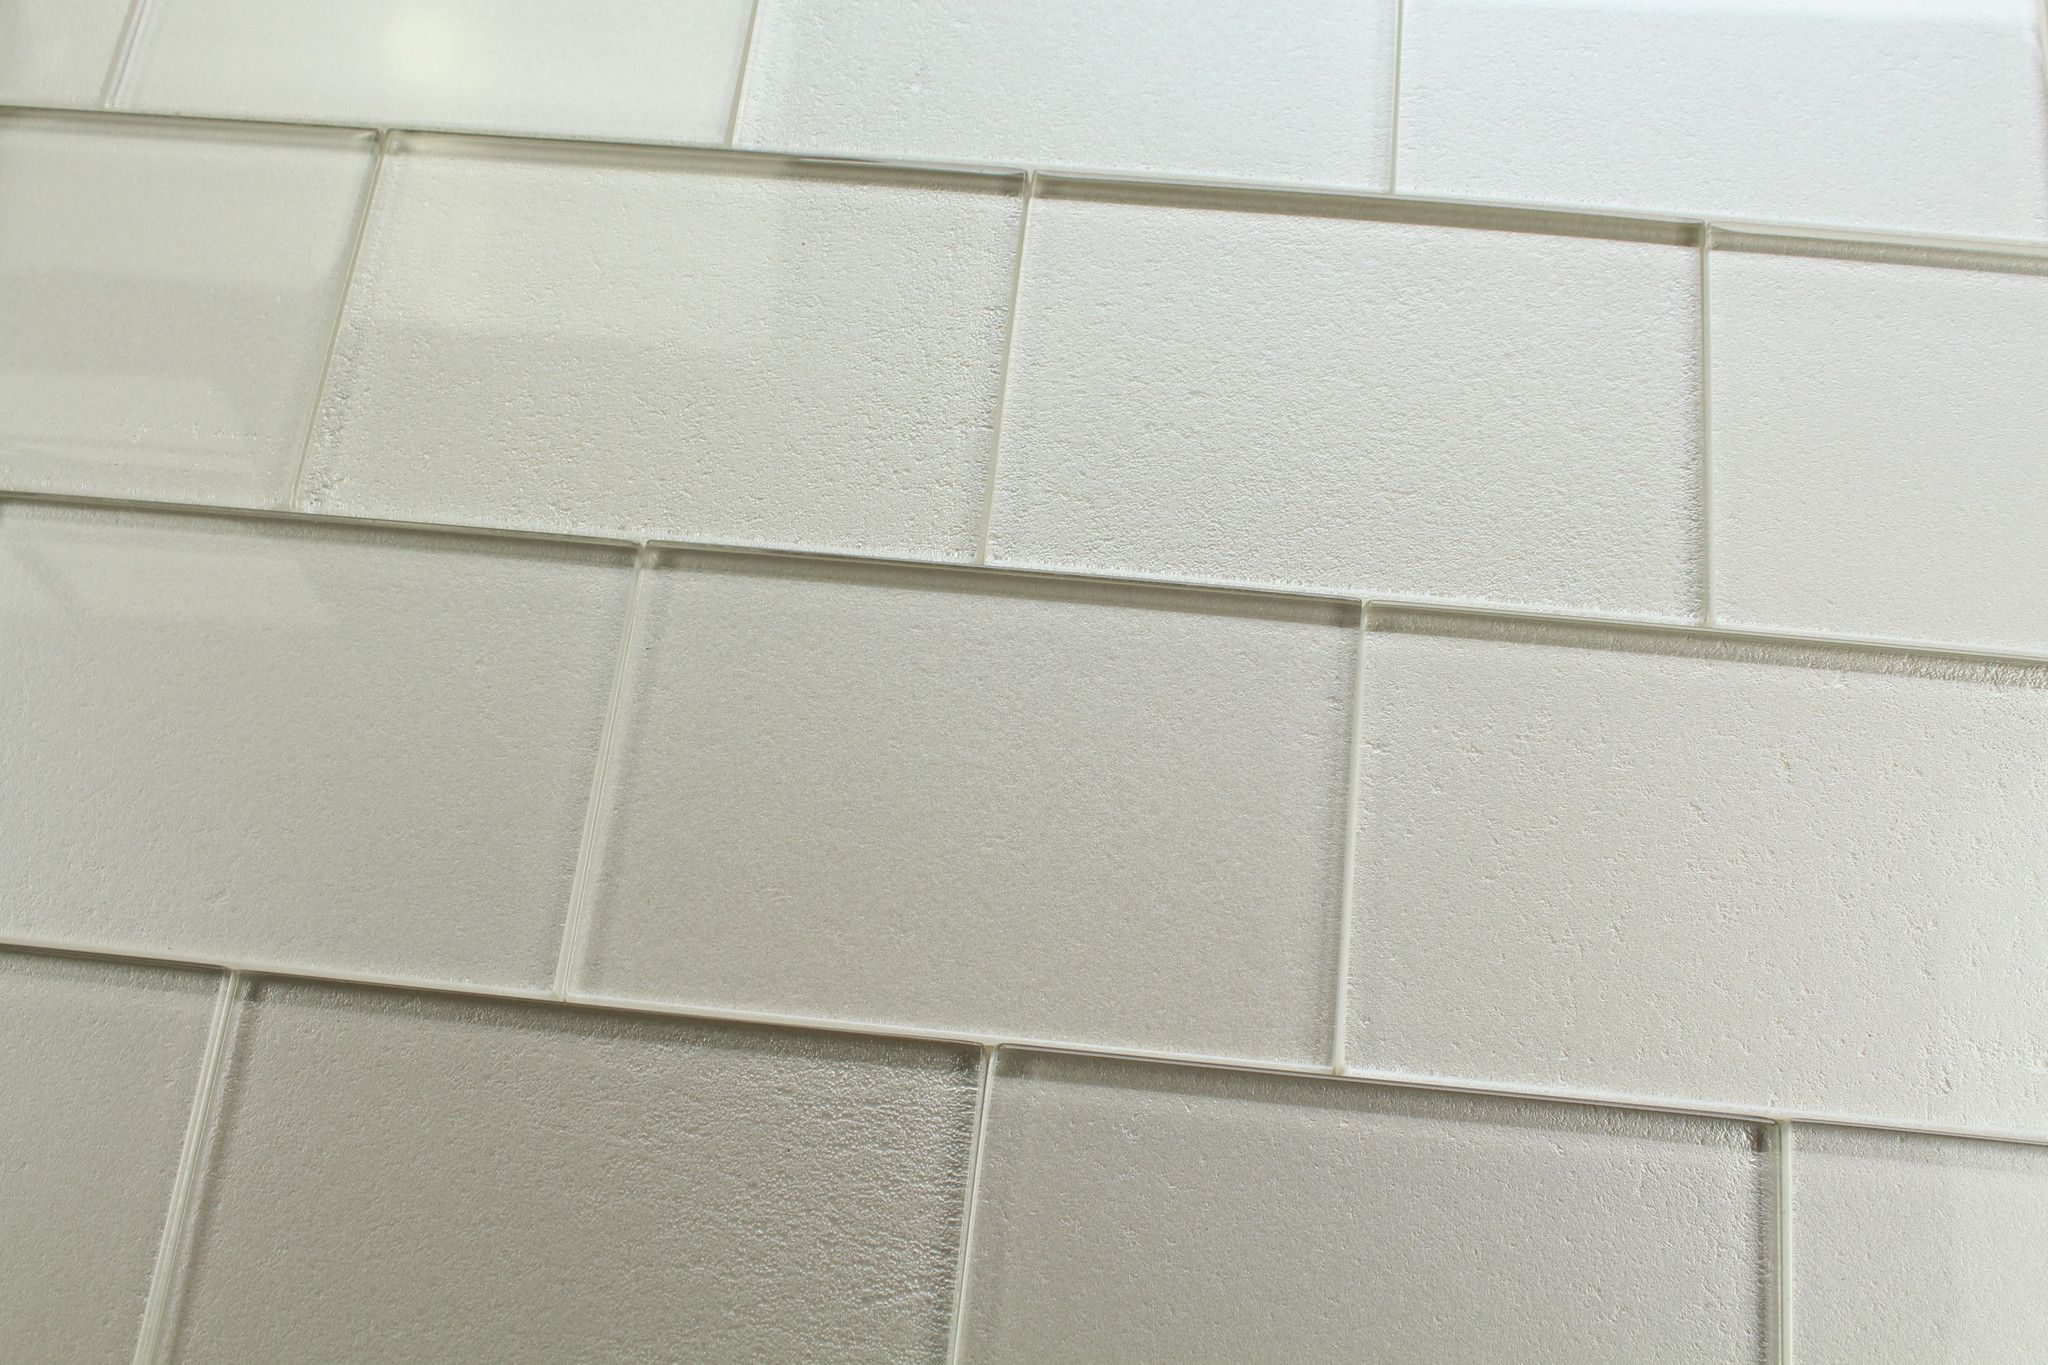 Elements Arctic 4x6 Glass Subway Tiles | Rocky Point Tile ...